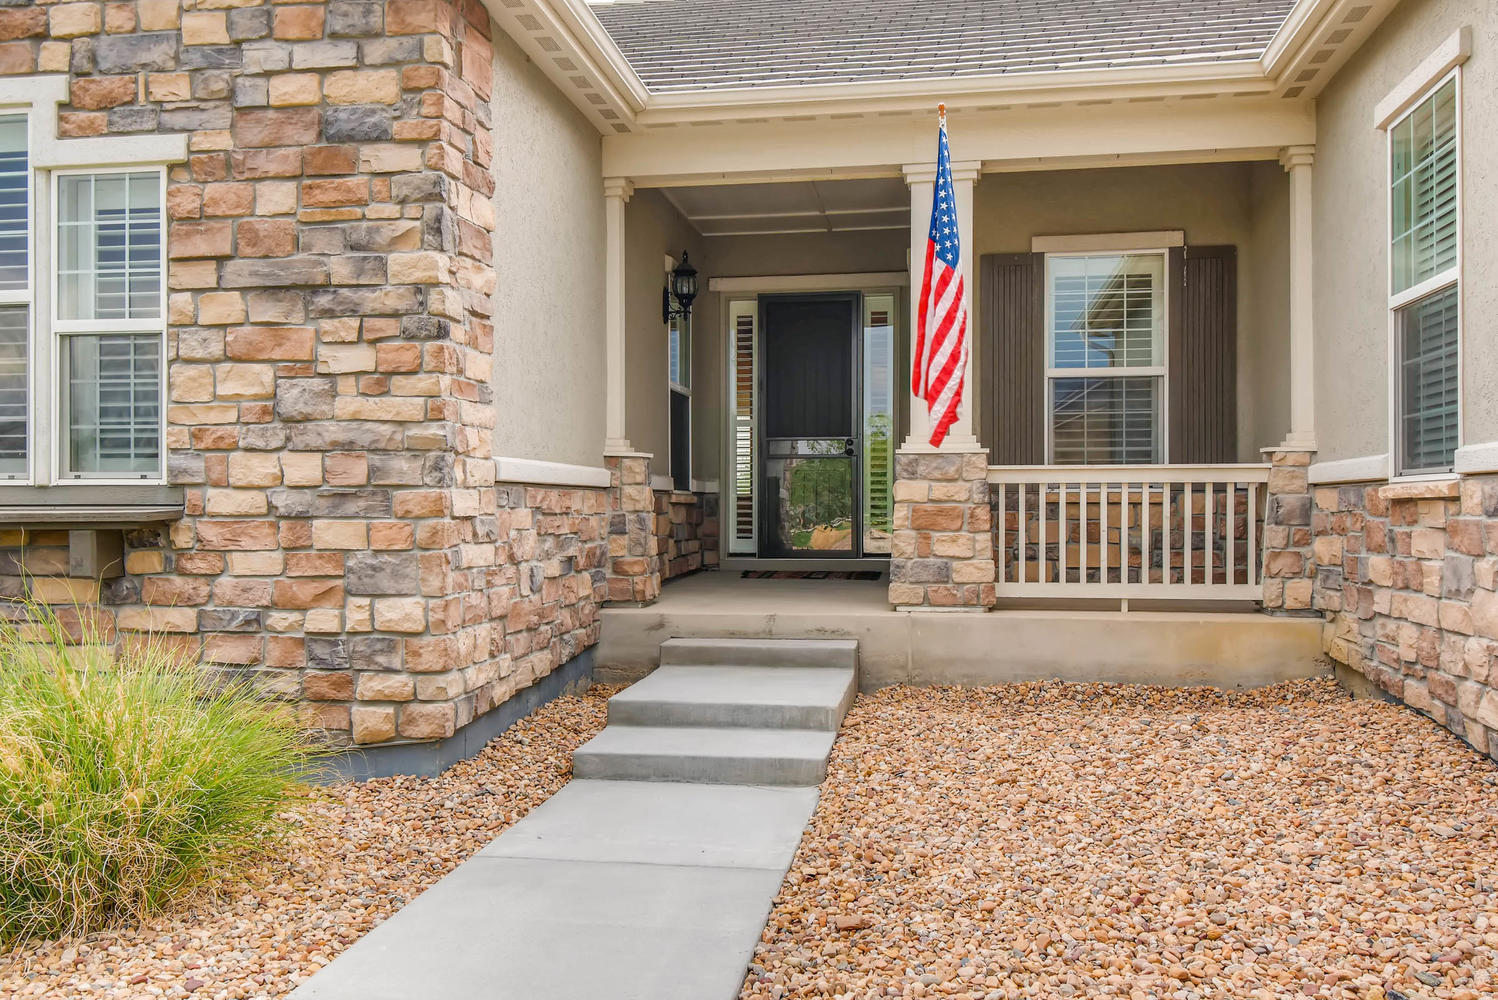 4785 Silver Mountain Loop-large-003-1-Exterior Front Entry-1499x1000-72dpi.jpg